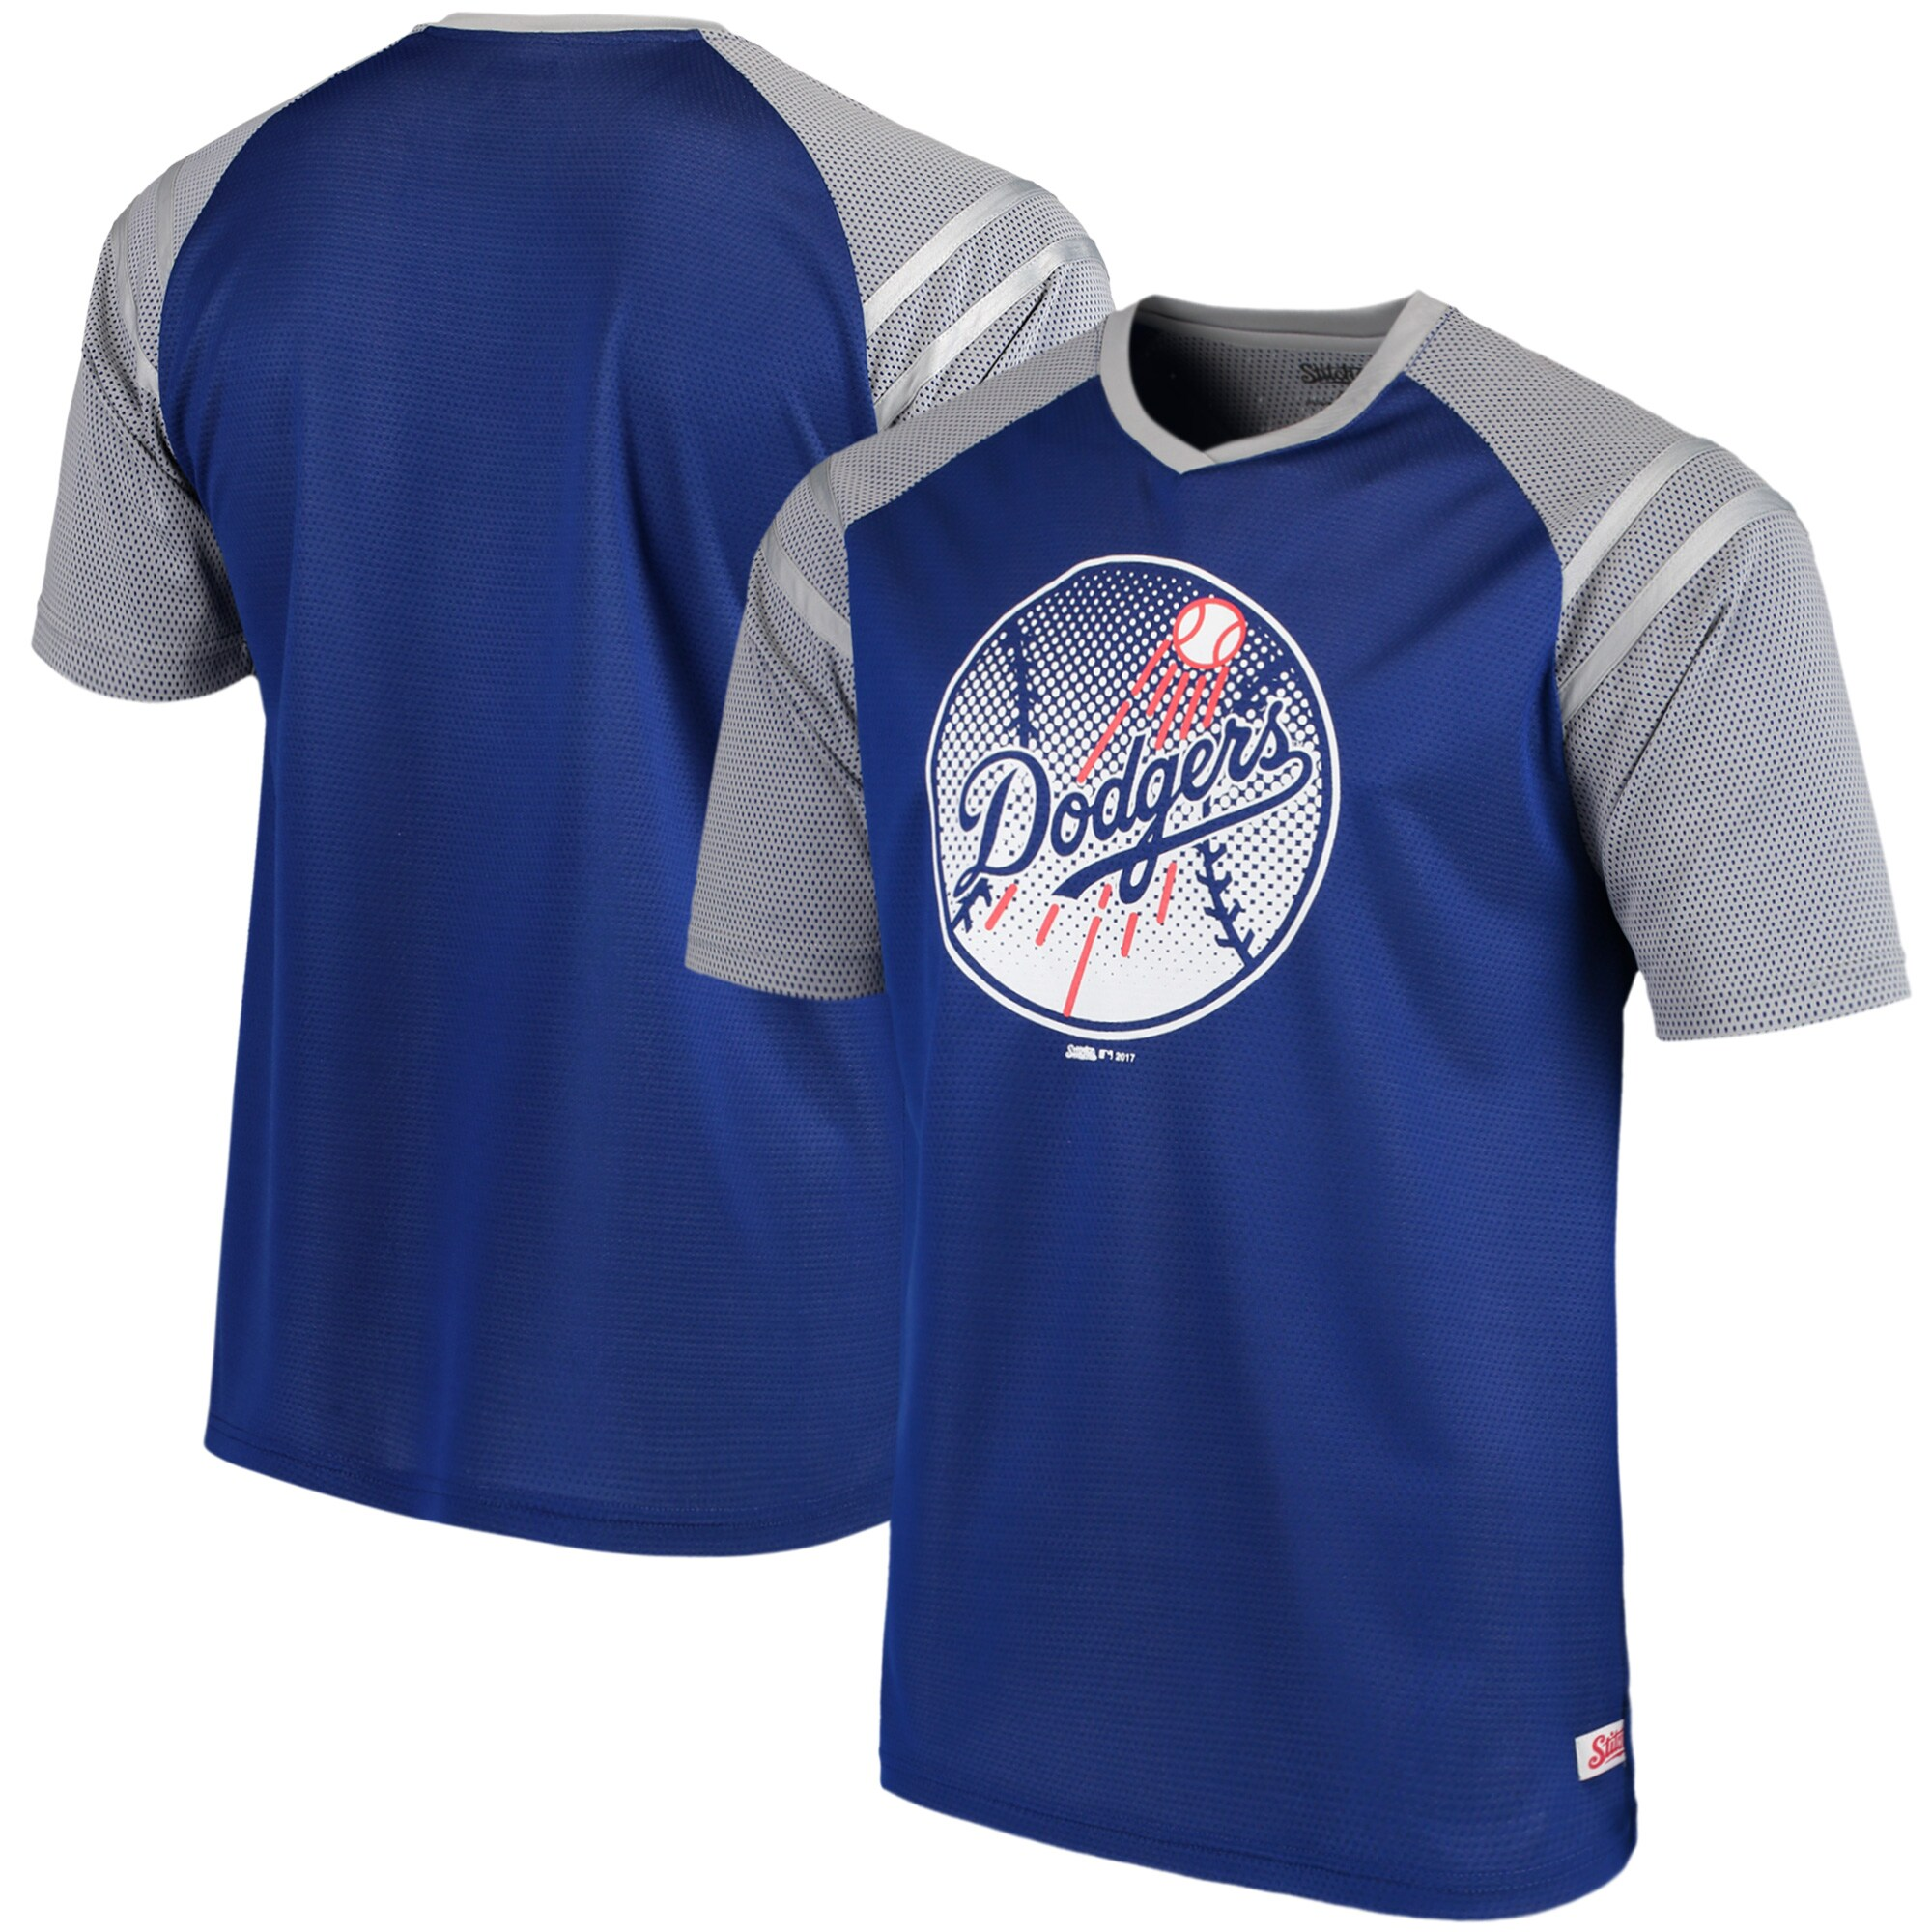 Los Angeles Dodgers Stitches V-Neck Mesh Jersey T-Shirt - Royal/Gray